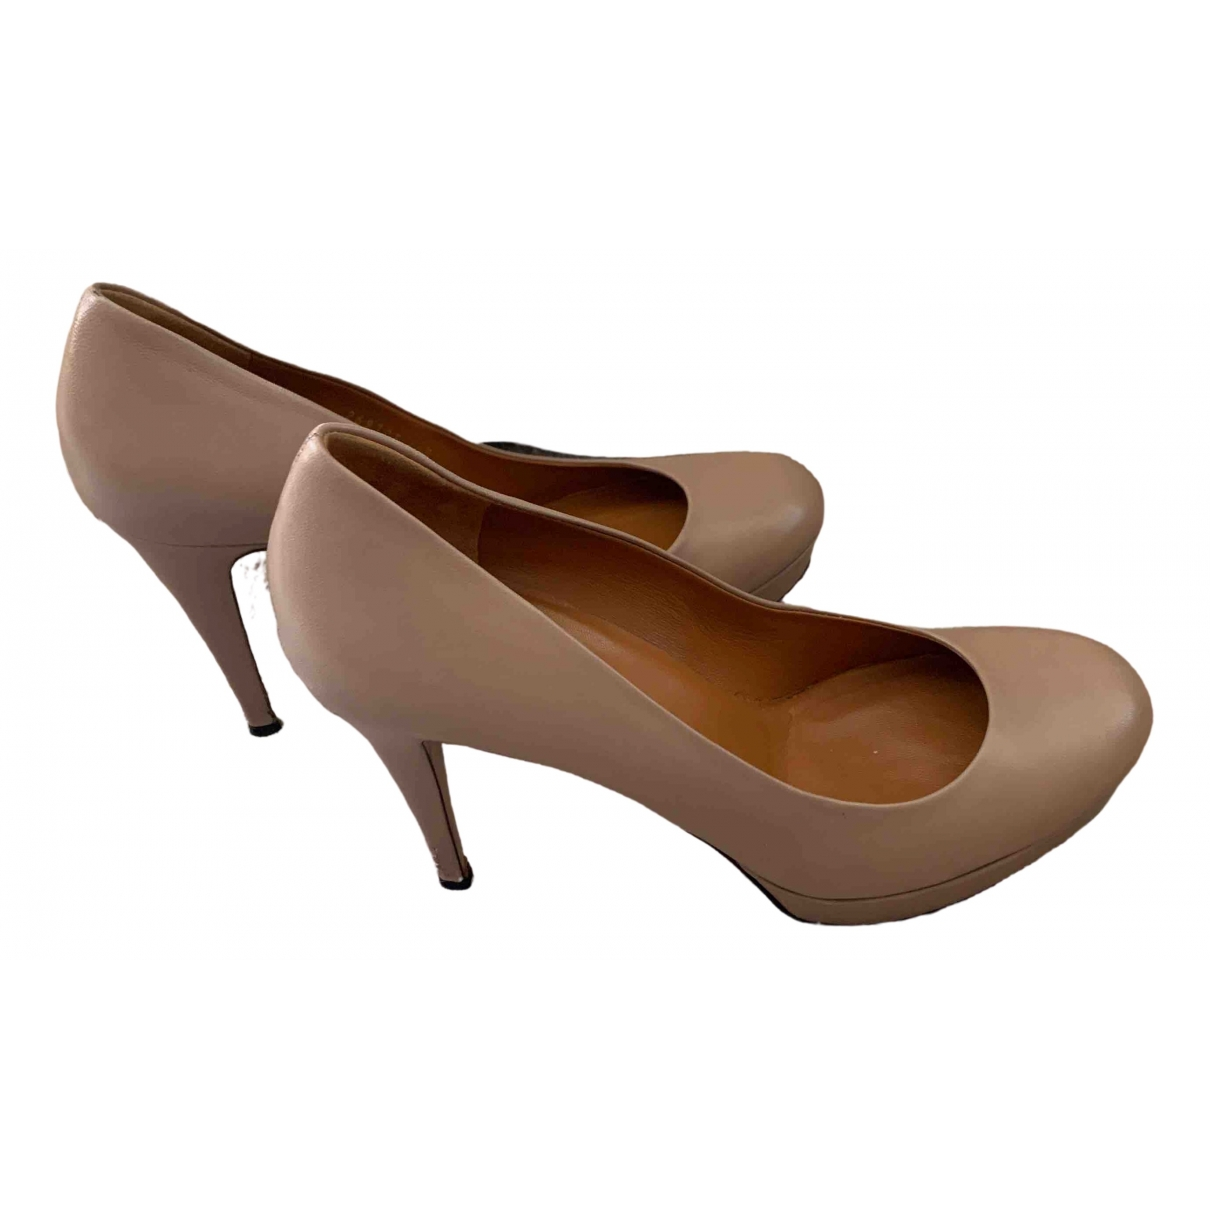 Gucci \N Beige Leather Heels for Women 40.5 EU